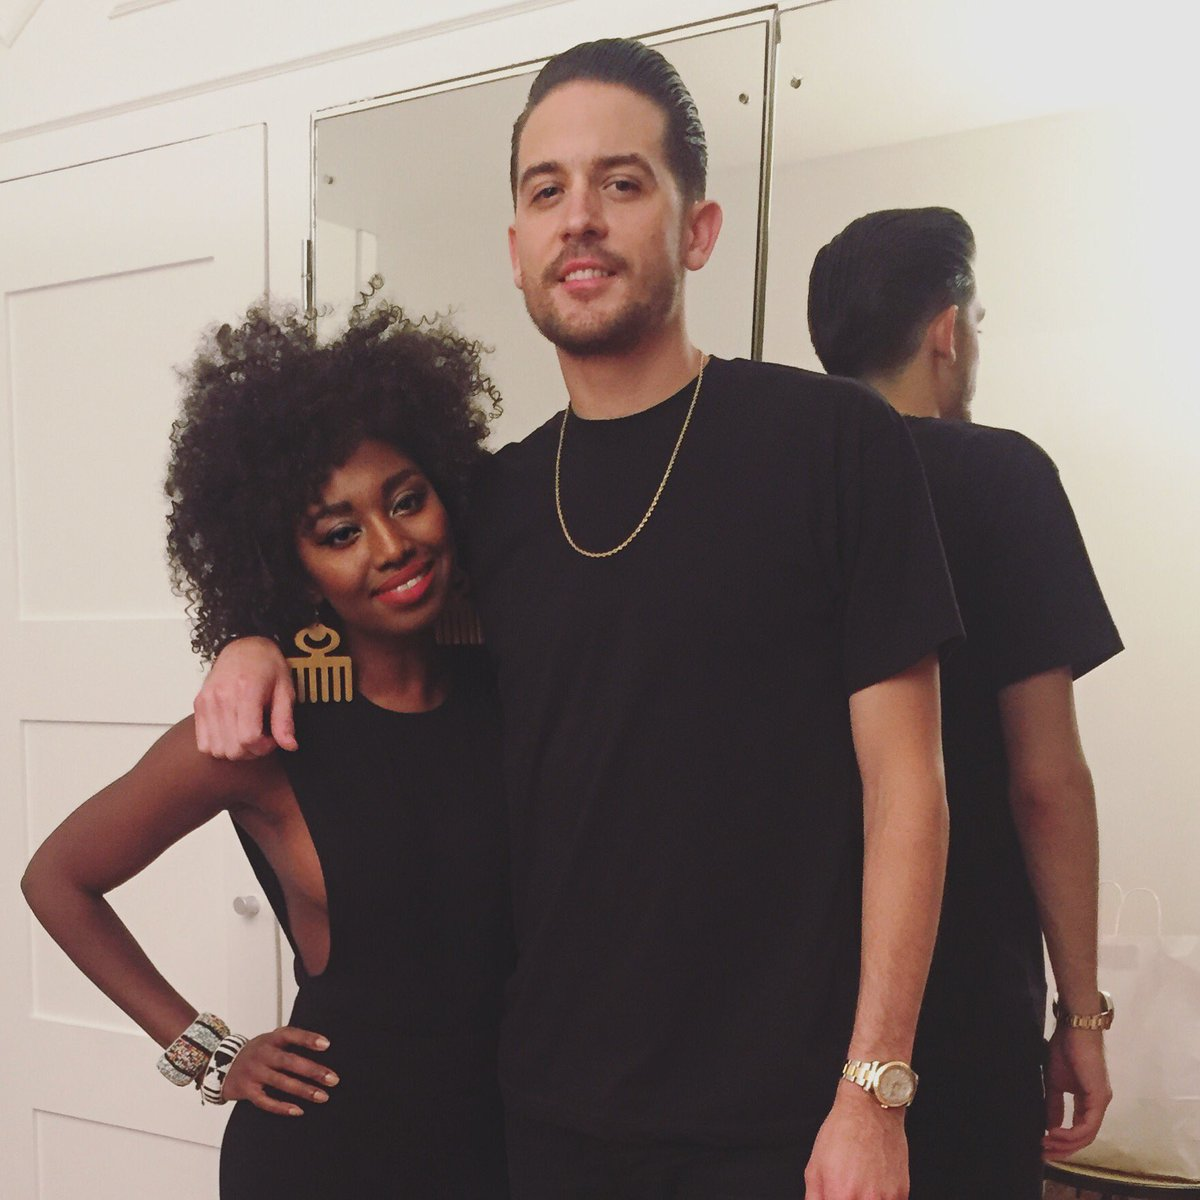 Just performed with @g_eazy on @canalplus for @legrandjournal